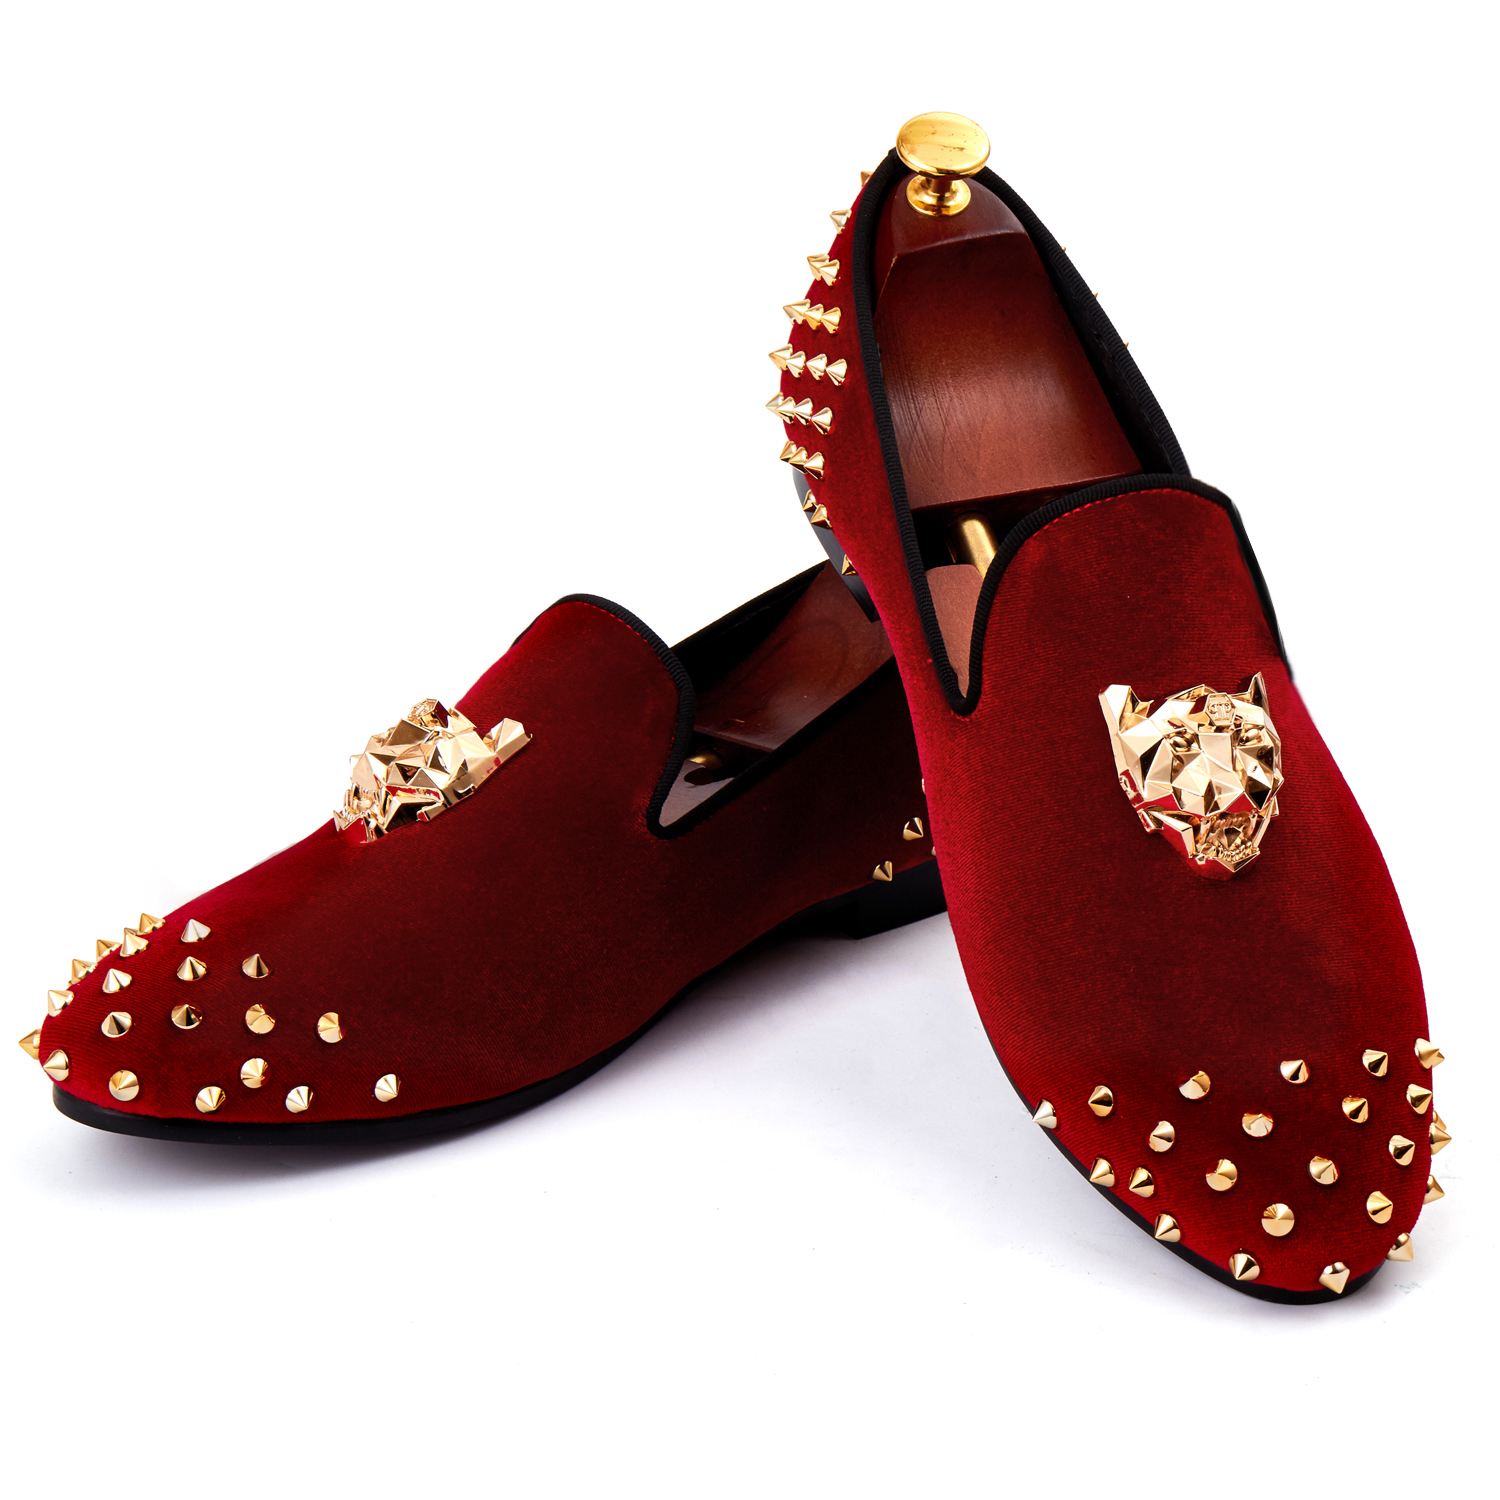 Harpelunde Men Rivet Shoes Animal Buckle Dress Shoes Red Velvet Loafers Size 6-14